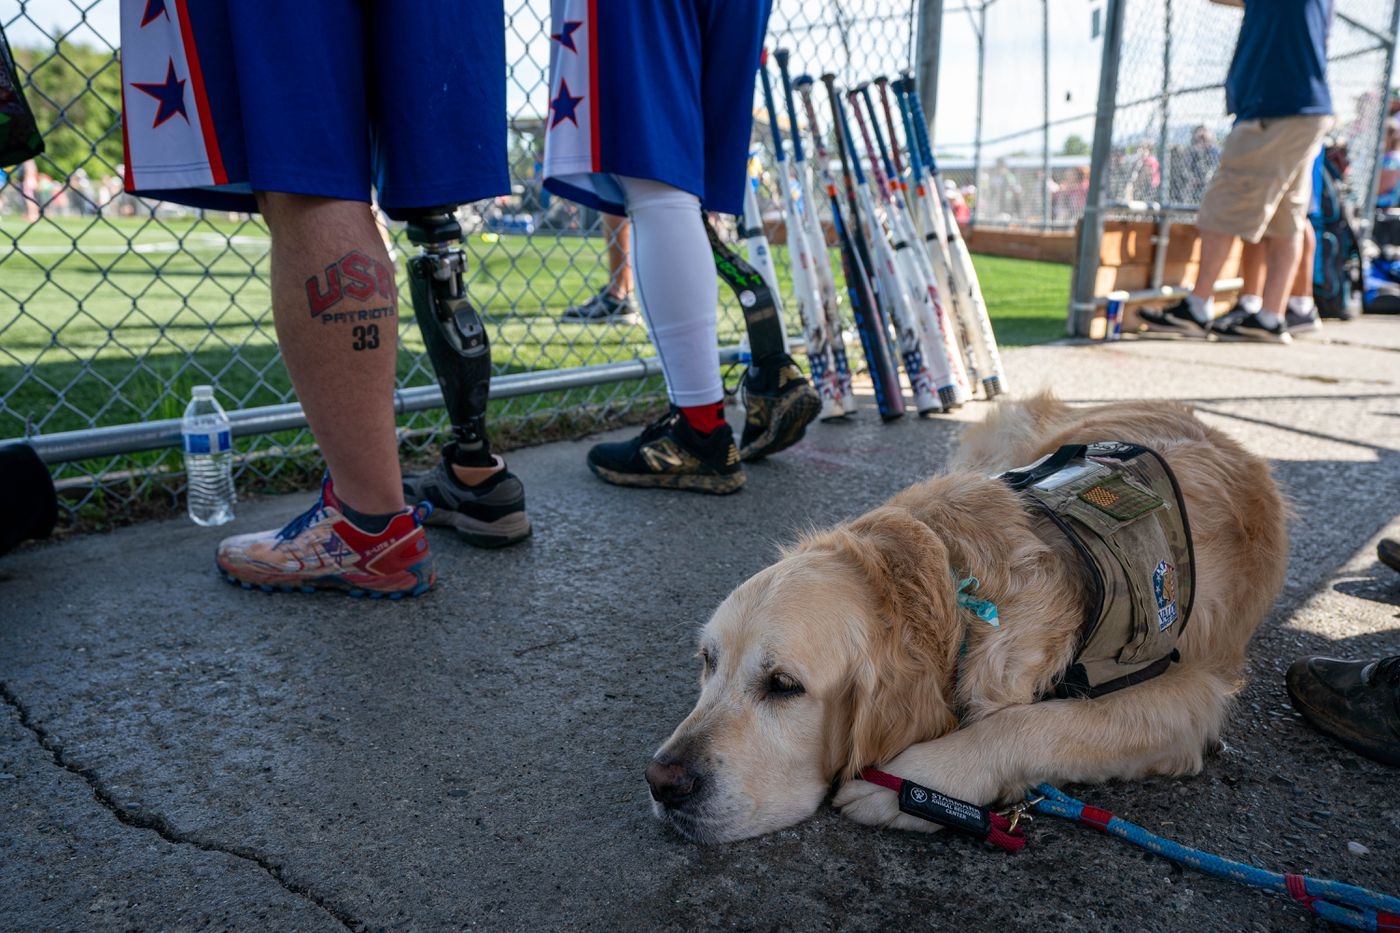 Huey, a service dog for player Reese Hines, relaxes inside the dugout. Hines retired from the Air Force in 2013 and moved to Eagle River for five years before relocating to to Texas. (Loren Holmes / ADN)